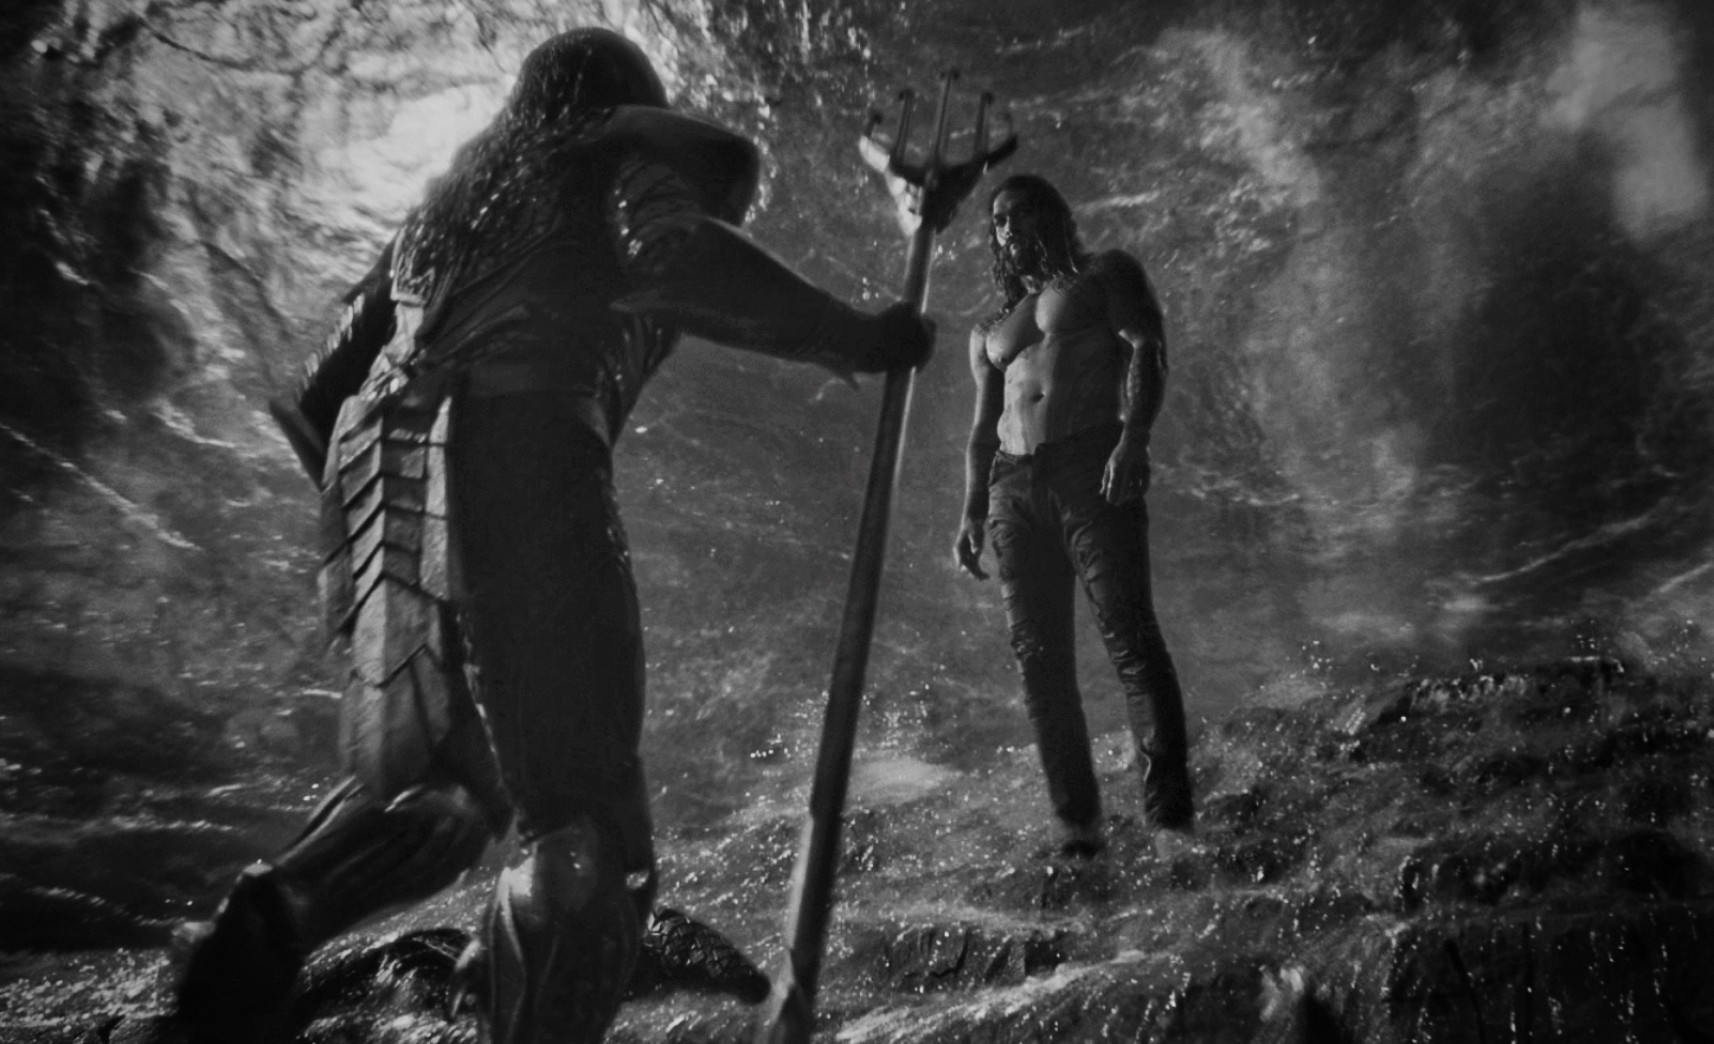 Aquaman Release The Snyder Cut